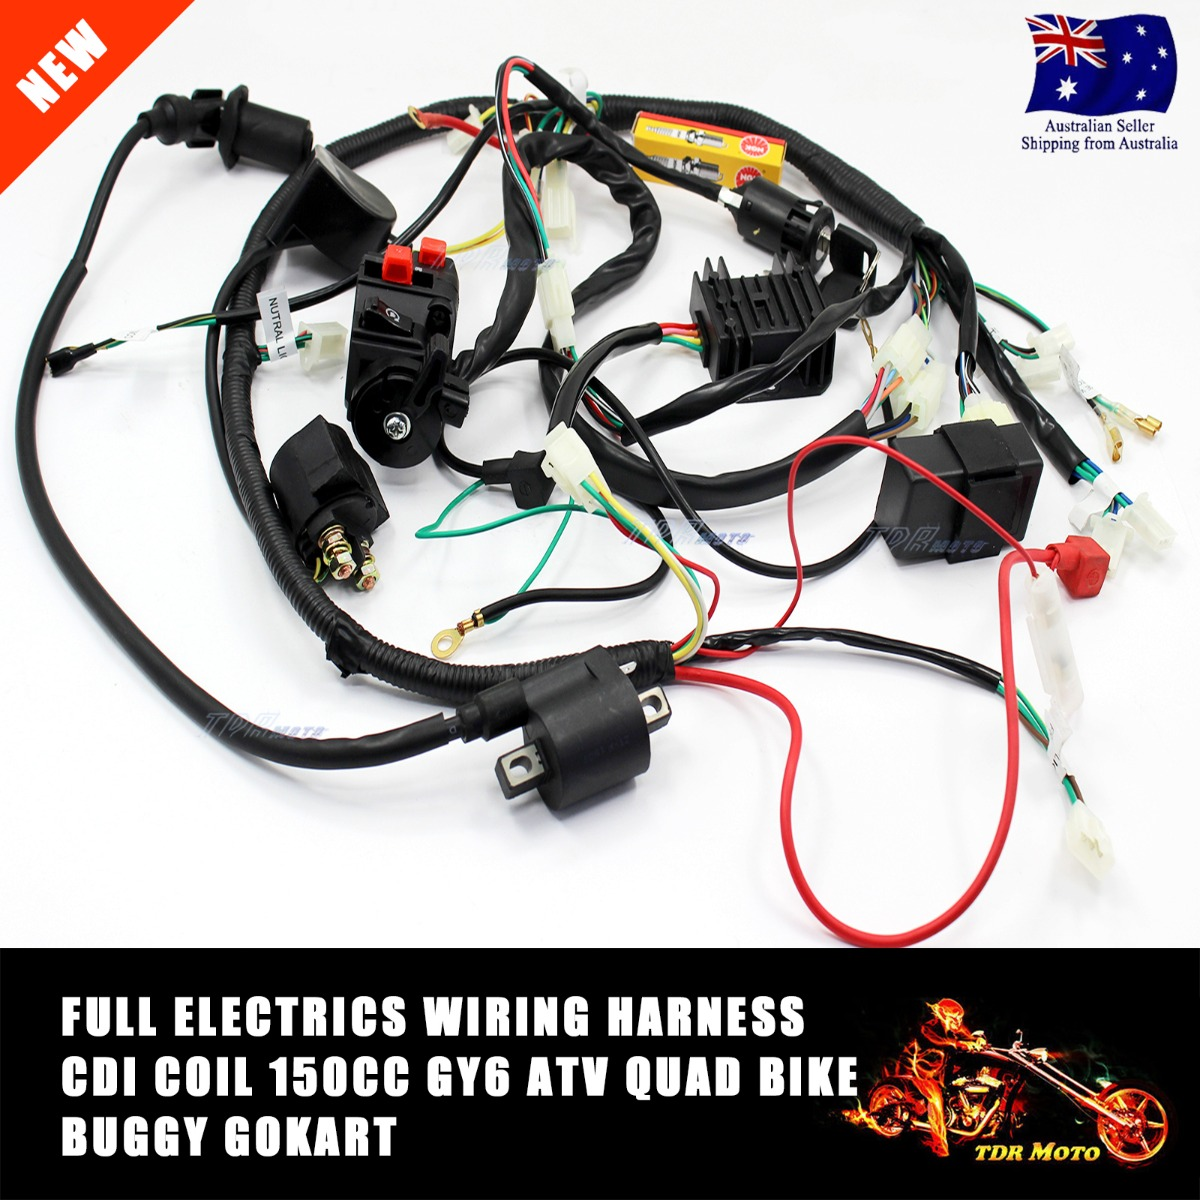 GY6 150CC ATV QUAD Buggy Carby Carburetor WIRE HARNESS WIRING